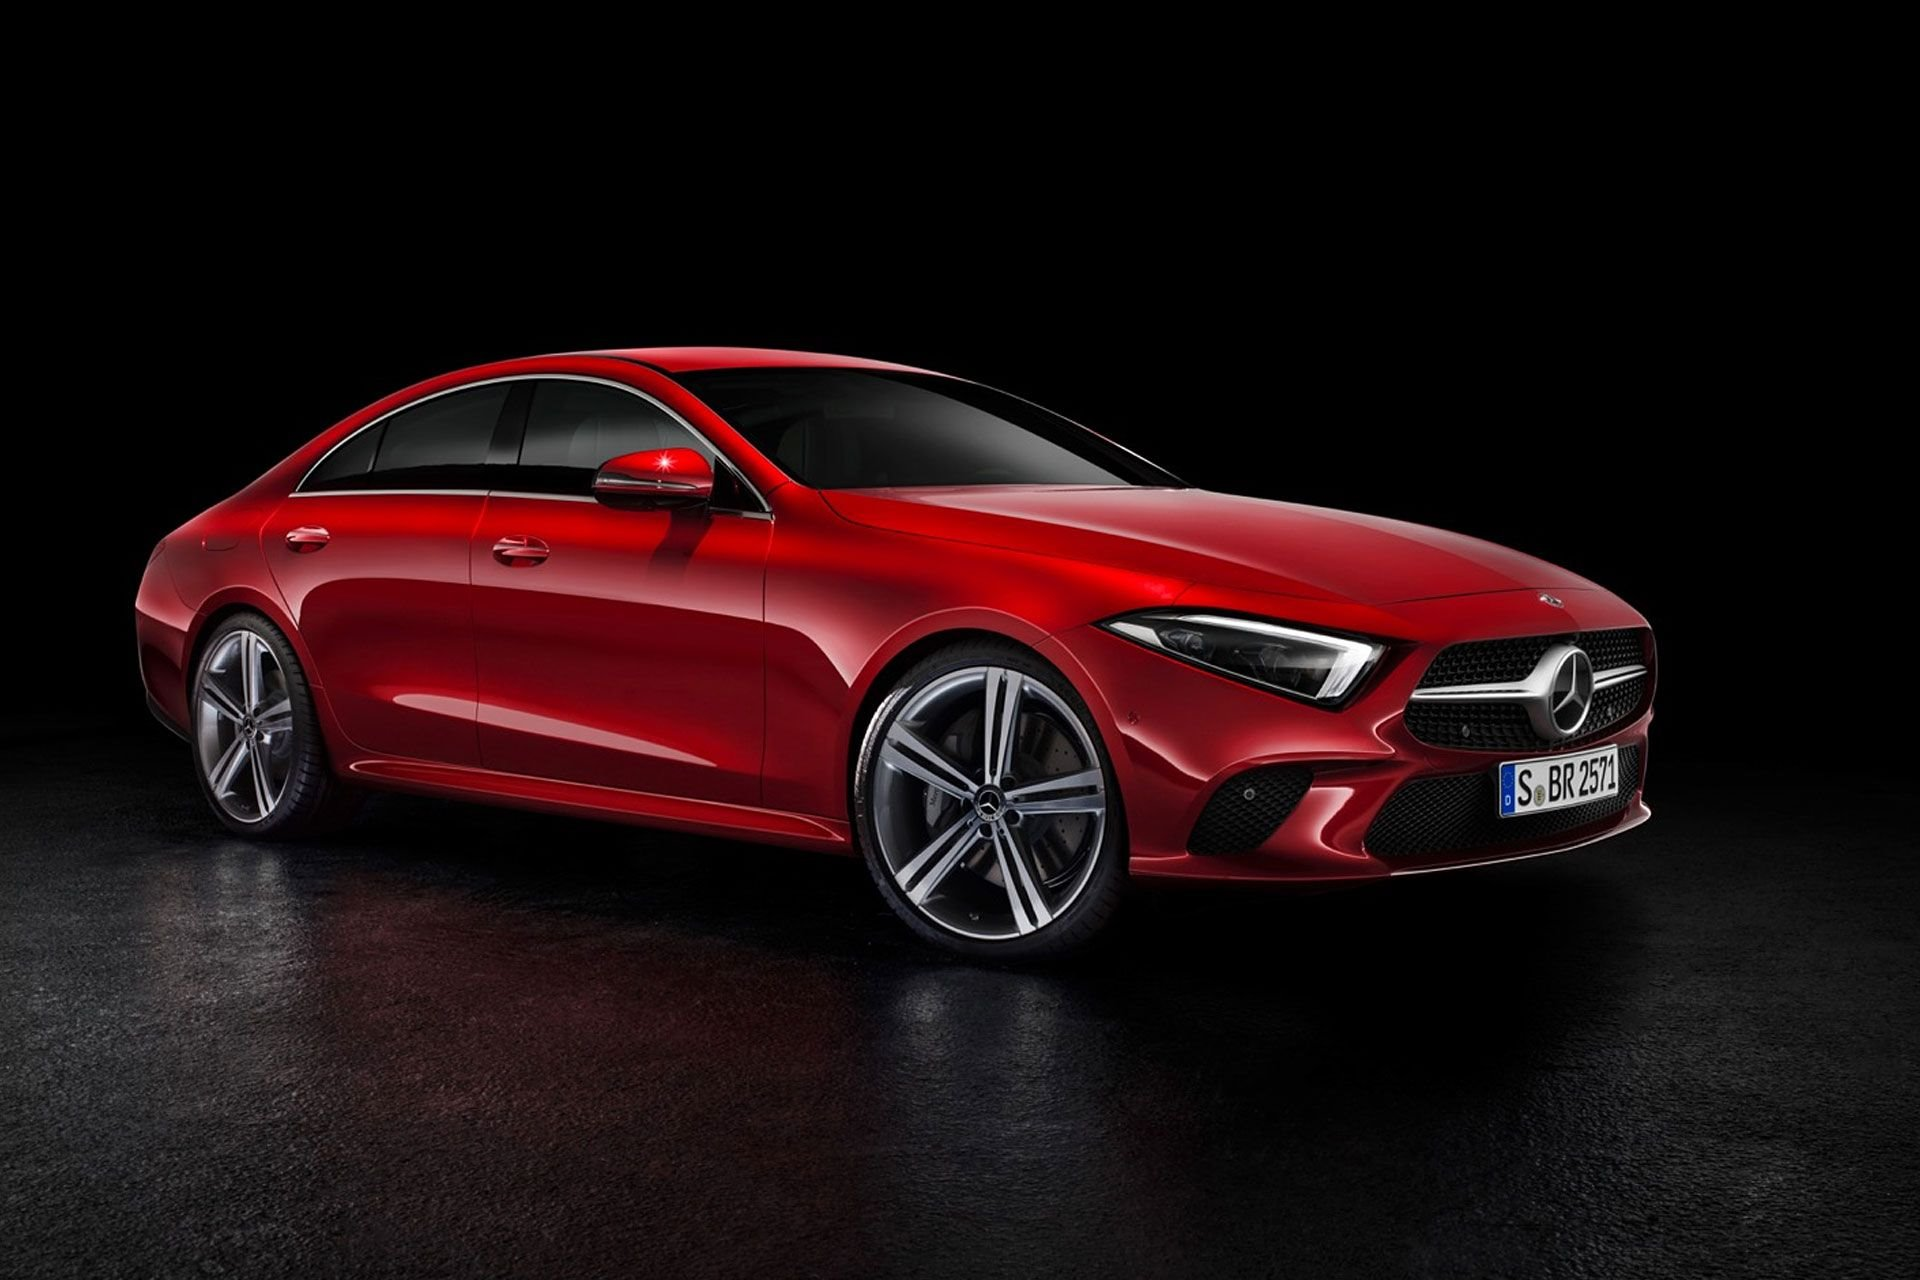 New 2019 Mercedes-Benz CLS 450 4MATIC CLS 450 4MATIC for sale $71,700 at M and V Leasing in Brooklyn NY 11223 1